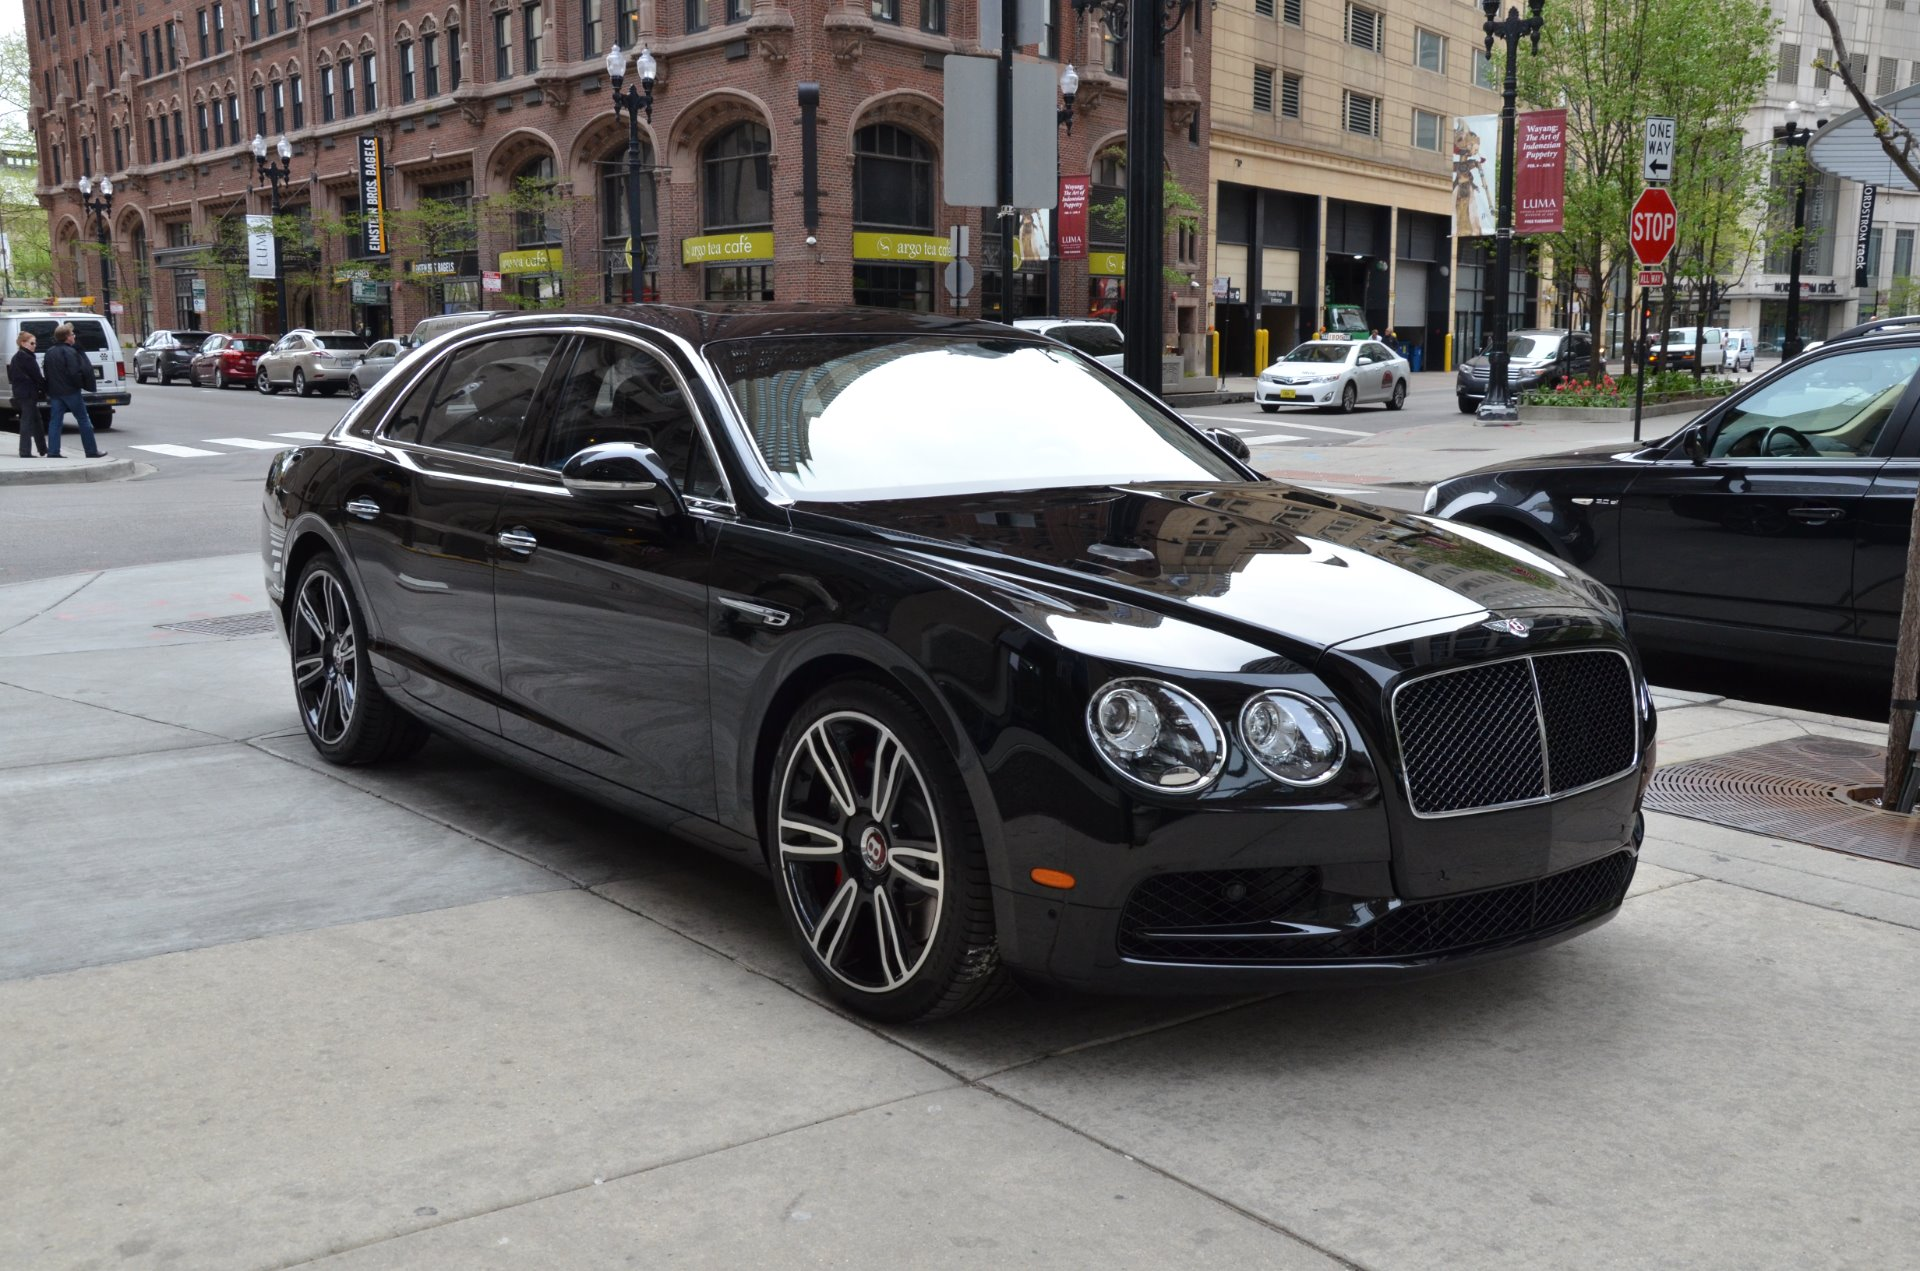 2017 bentley flying spur v8 s stock b923 s for sale near chicago il il bentley dealer. Black Bedroom Furniture Sets. Home Design Ideas